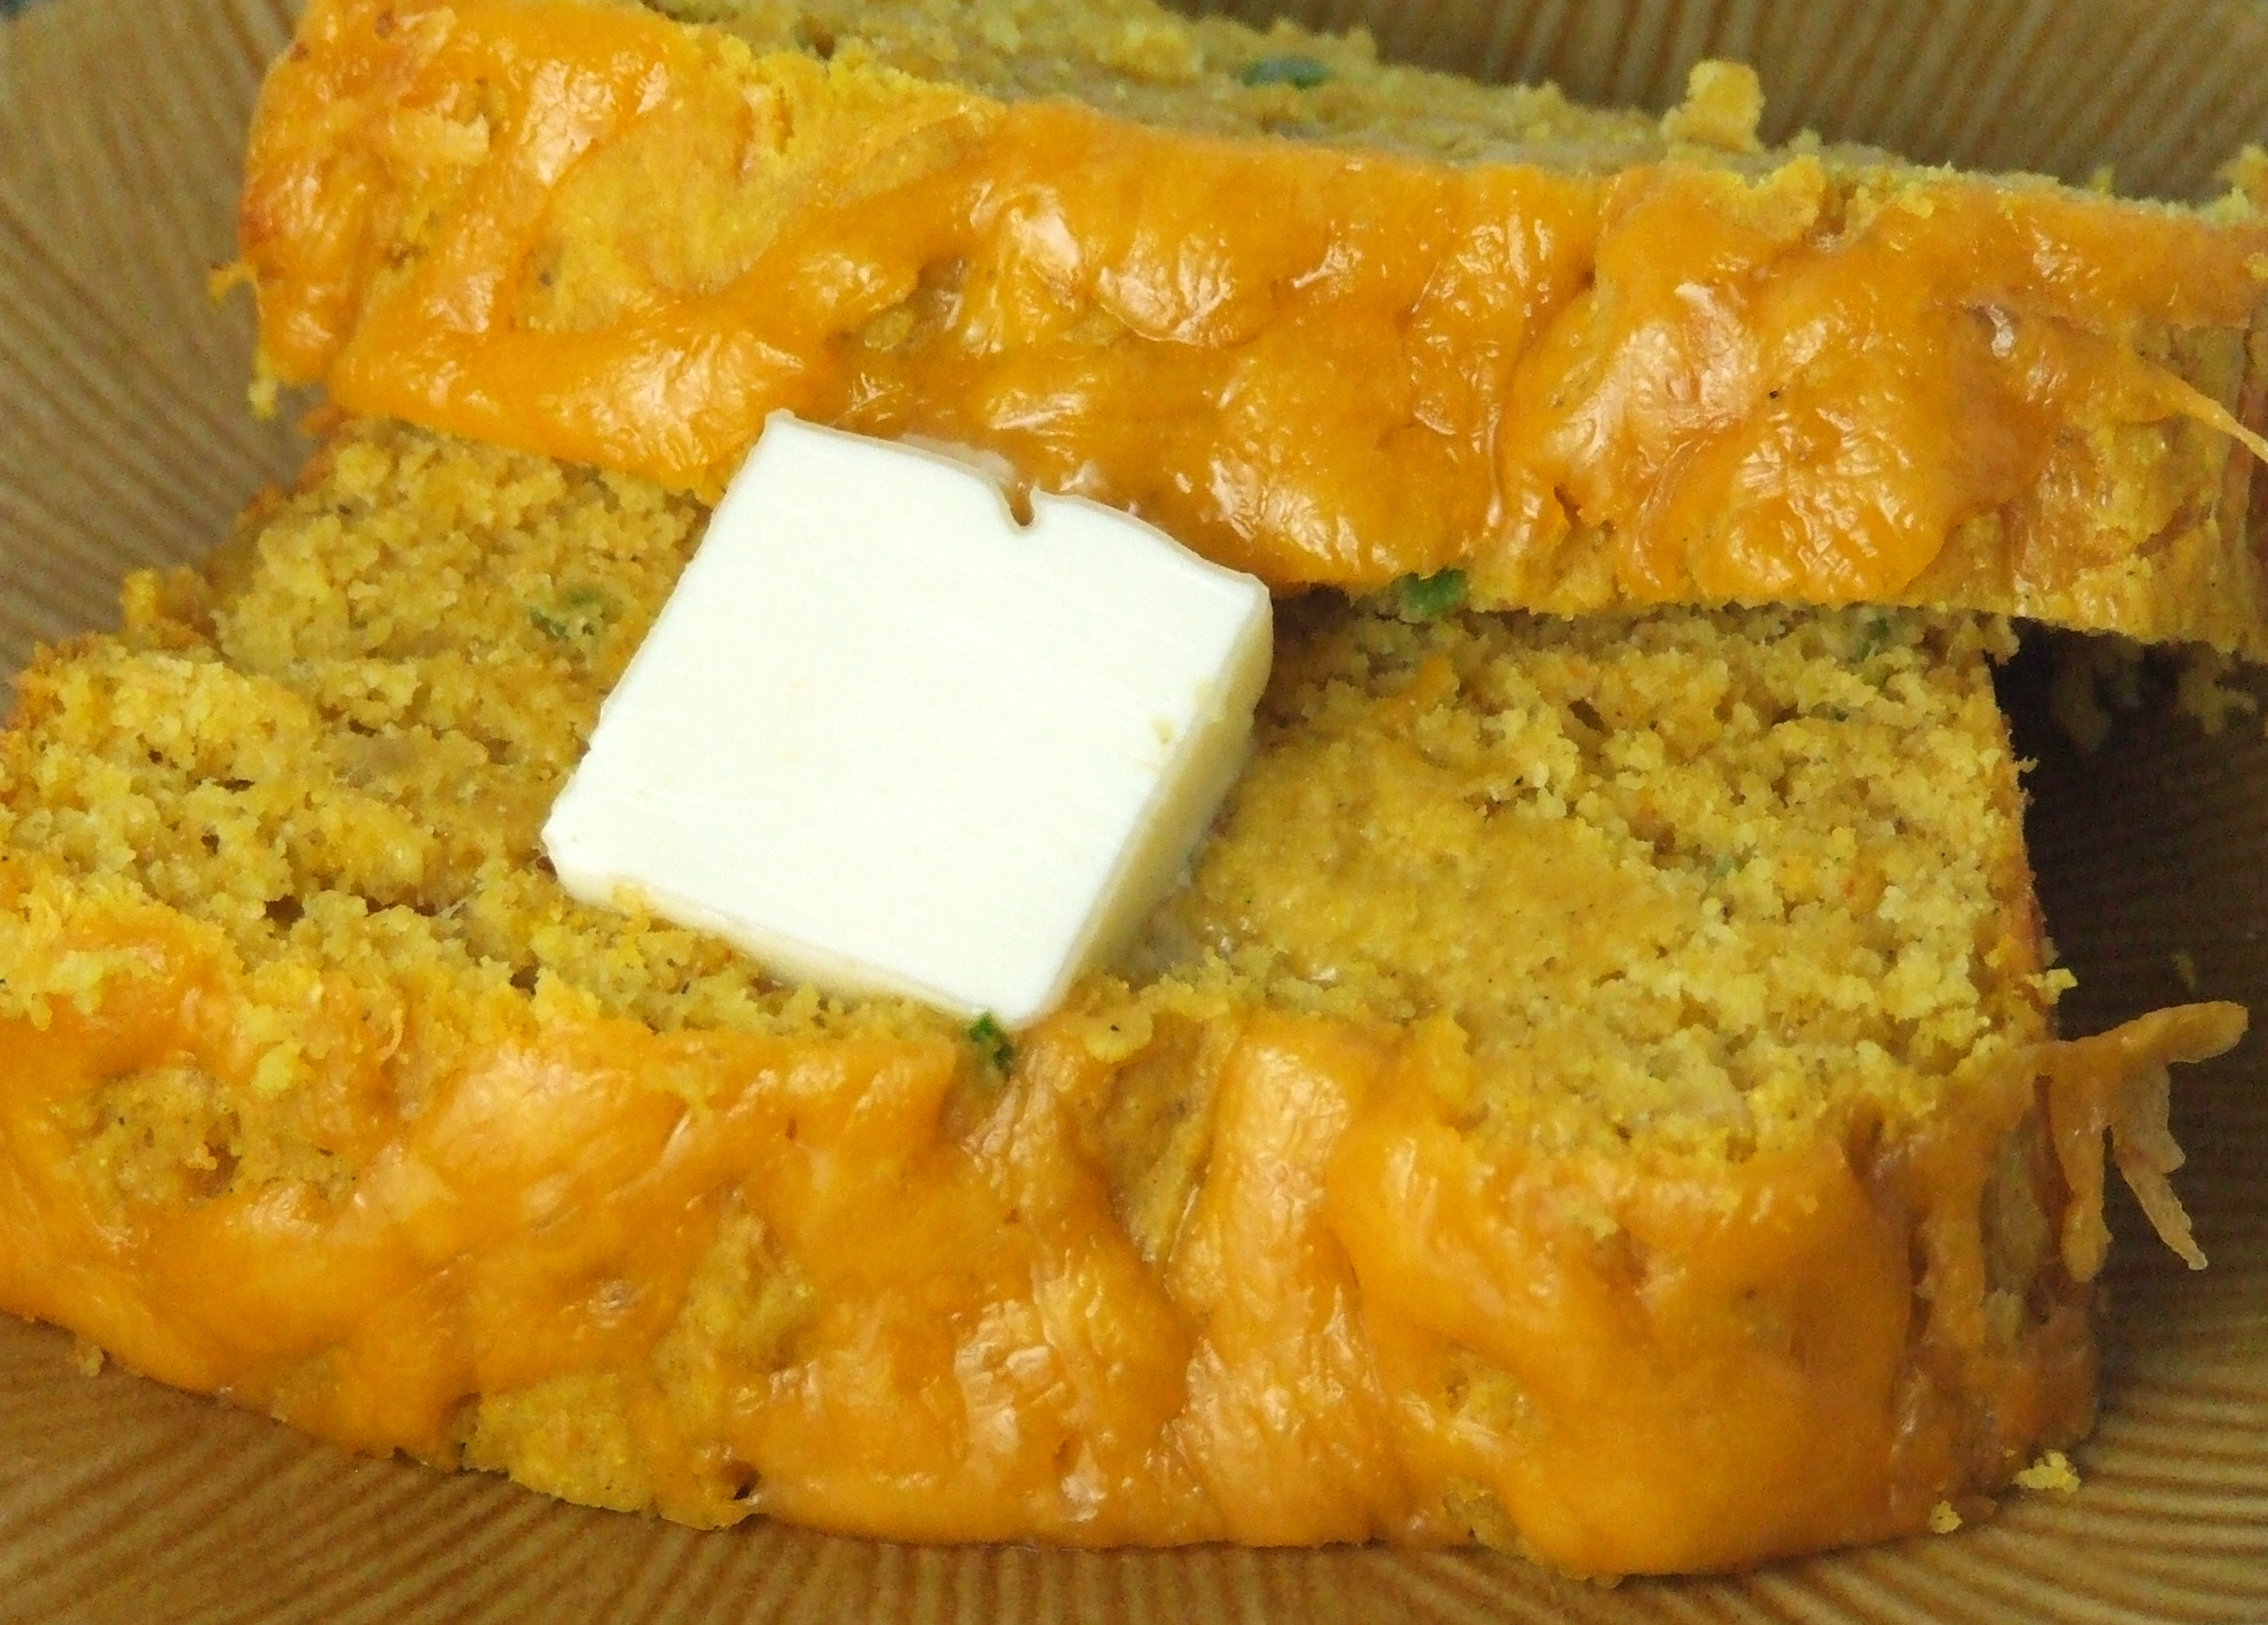 Flavors of India: Spiced Pumpkin Bread